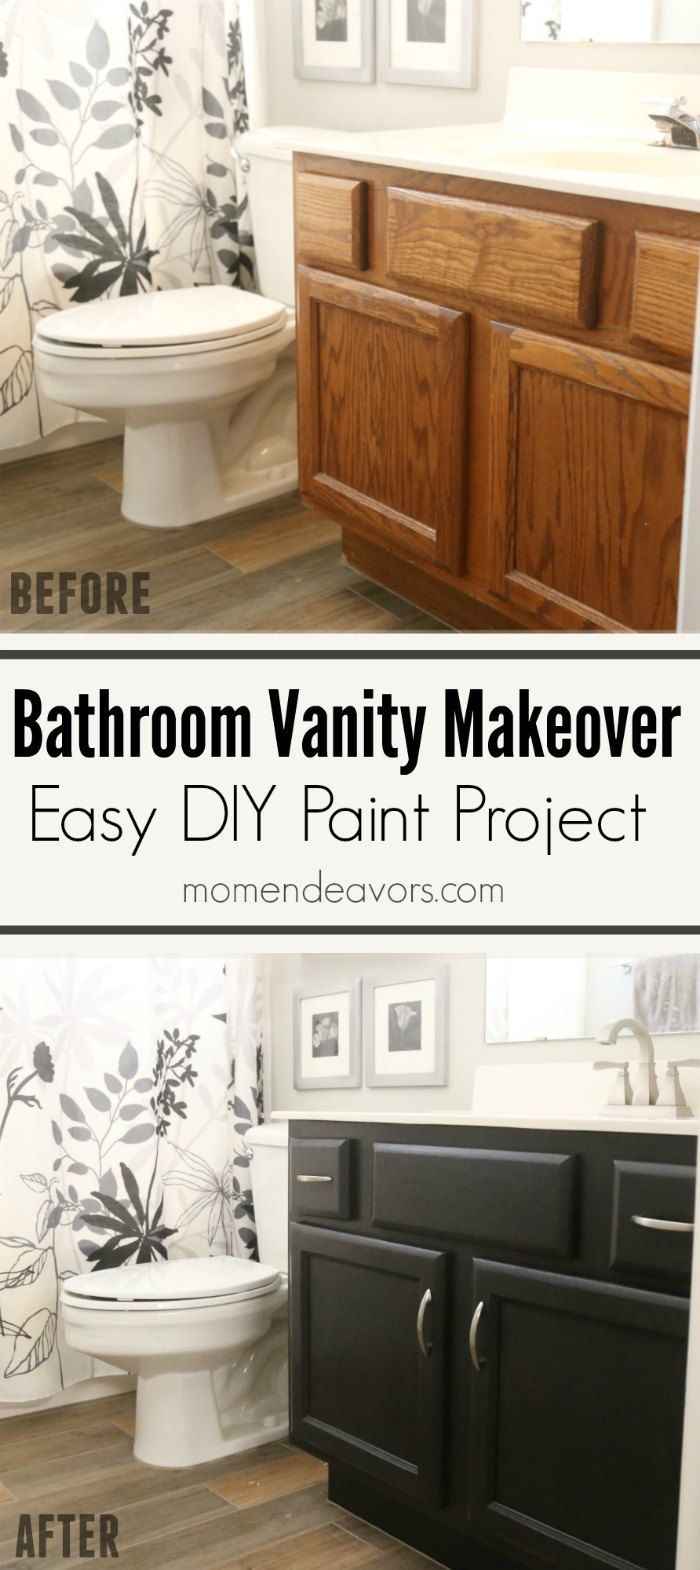 How To Make A Bathroom Vanity Cabinet Bathroom Vanity Makeover Easy Diy Home Paint Project Paint